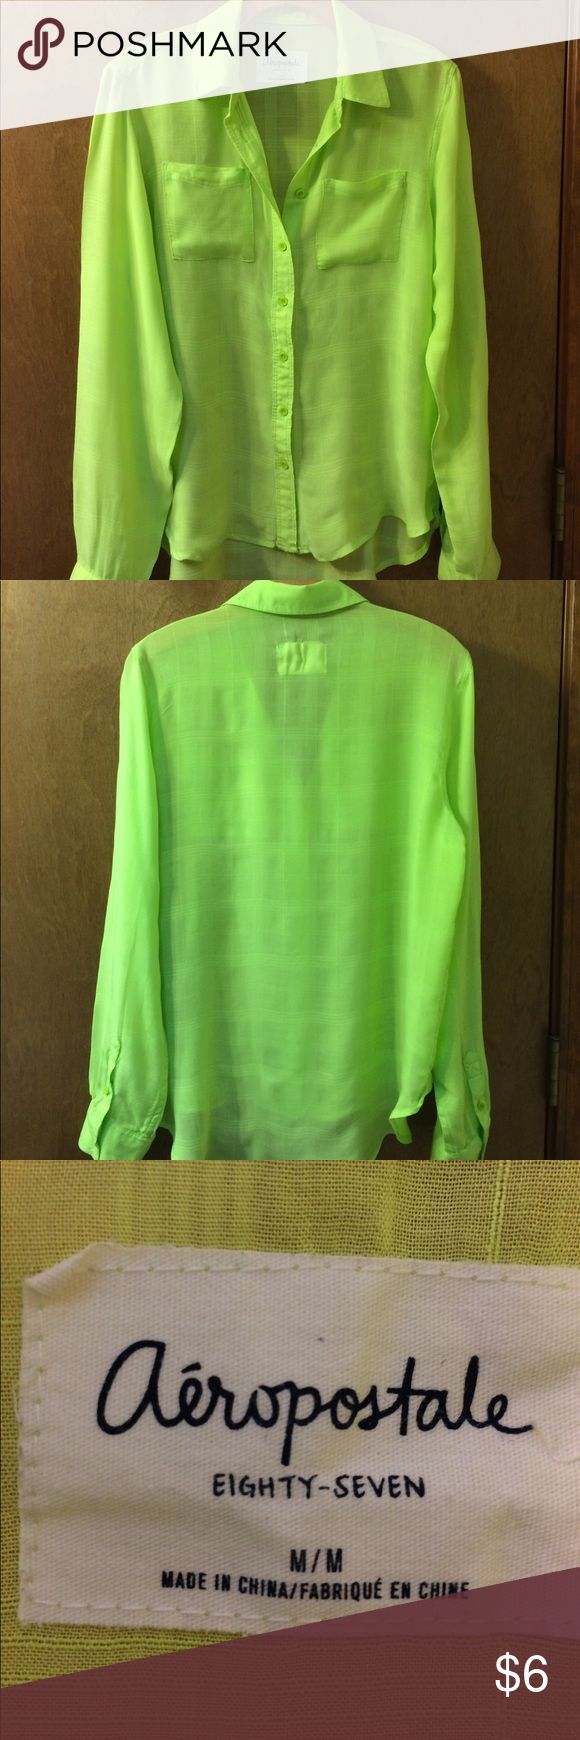 Aeropostale Lime Green Shirt This unstructured shirt is 100% rayon with long sleeves. There are two front patch pockets at the breast. Beautiful, bright green for spring and summer! Aeropostale Tops Button Down Shirts